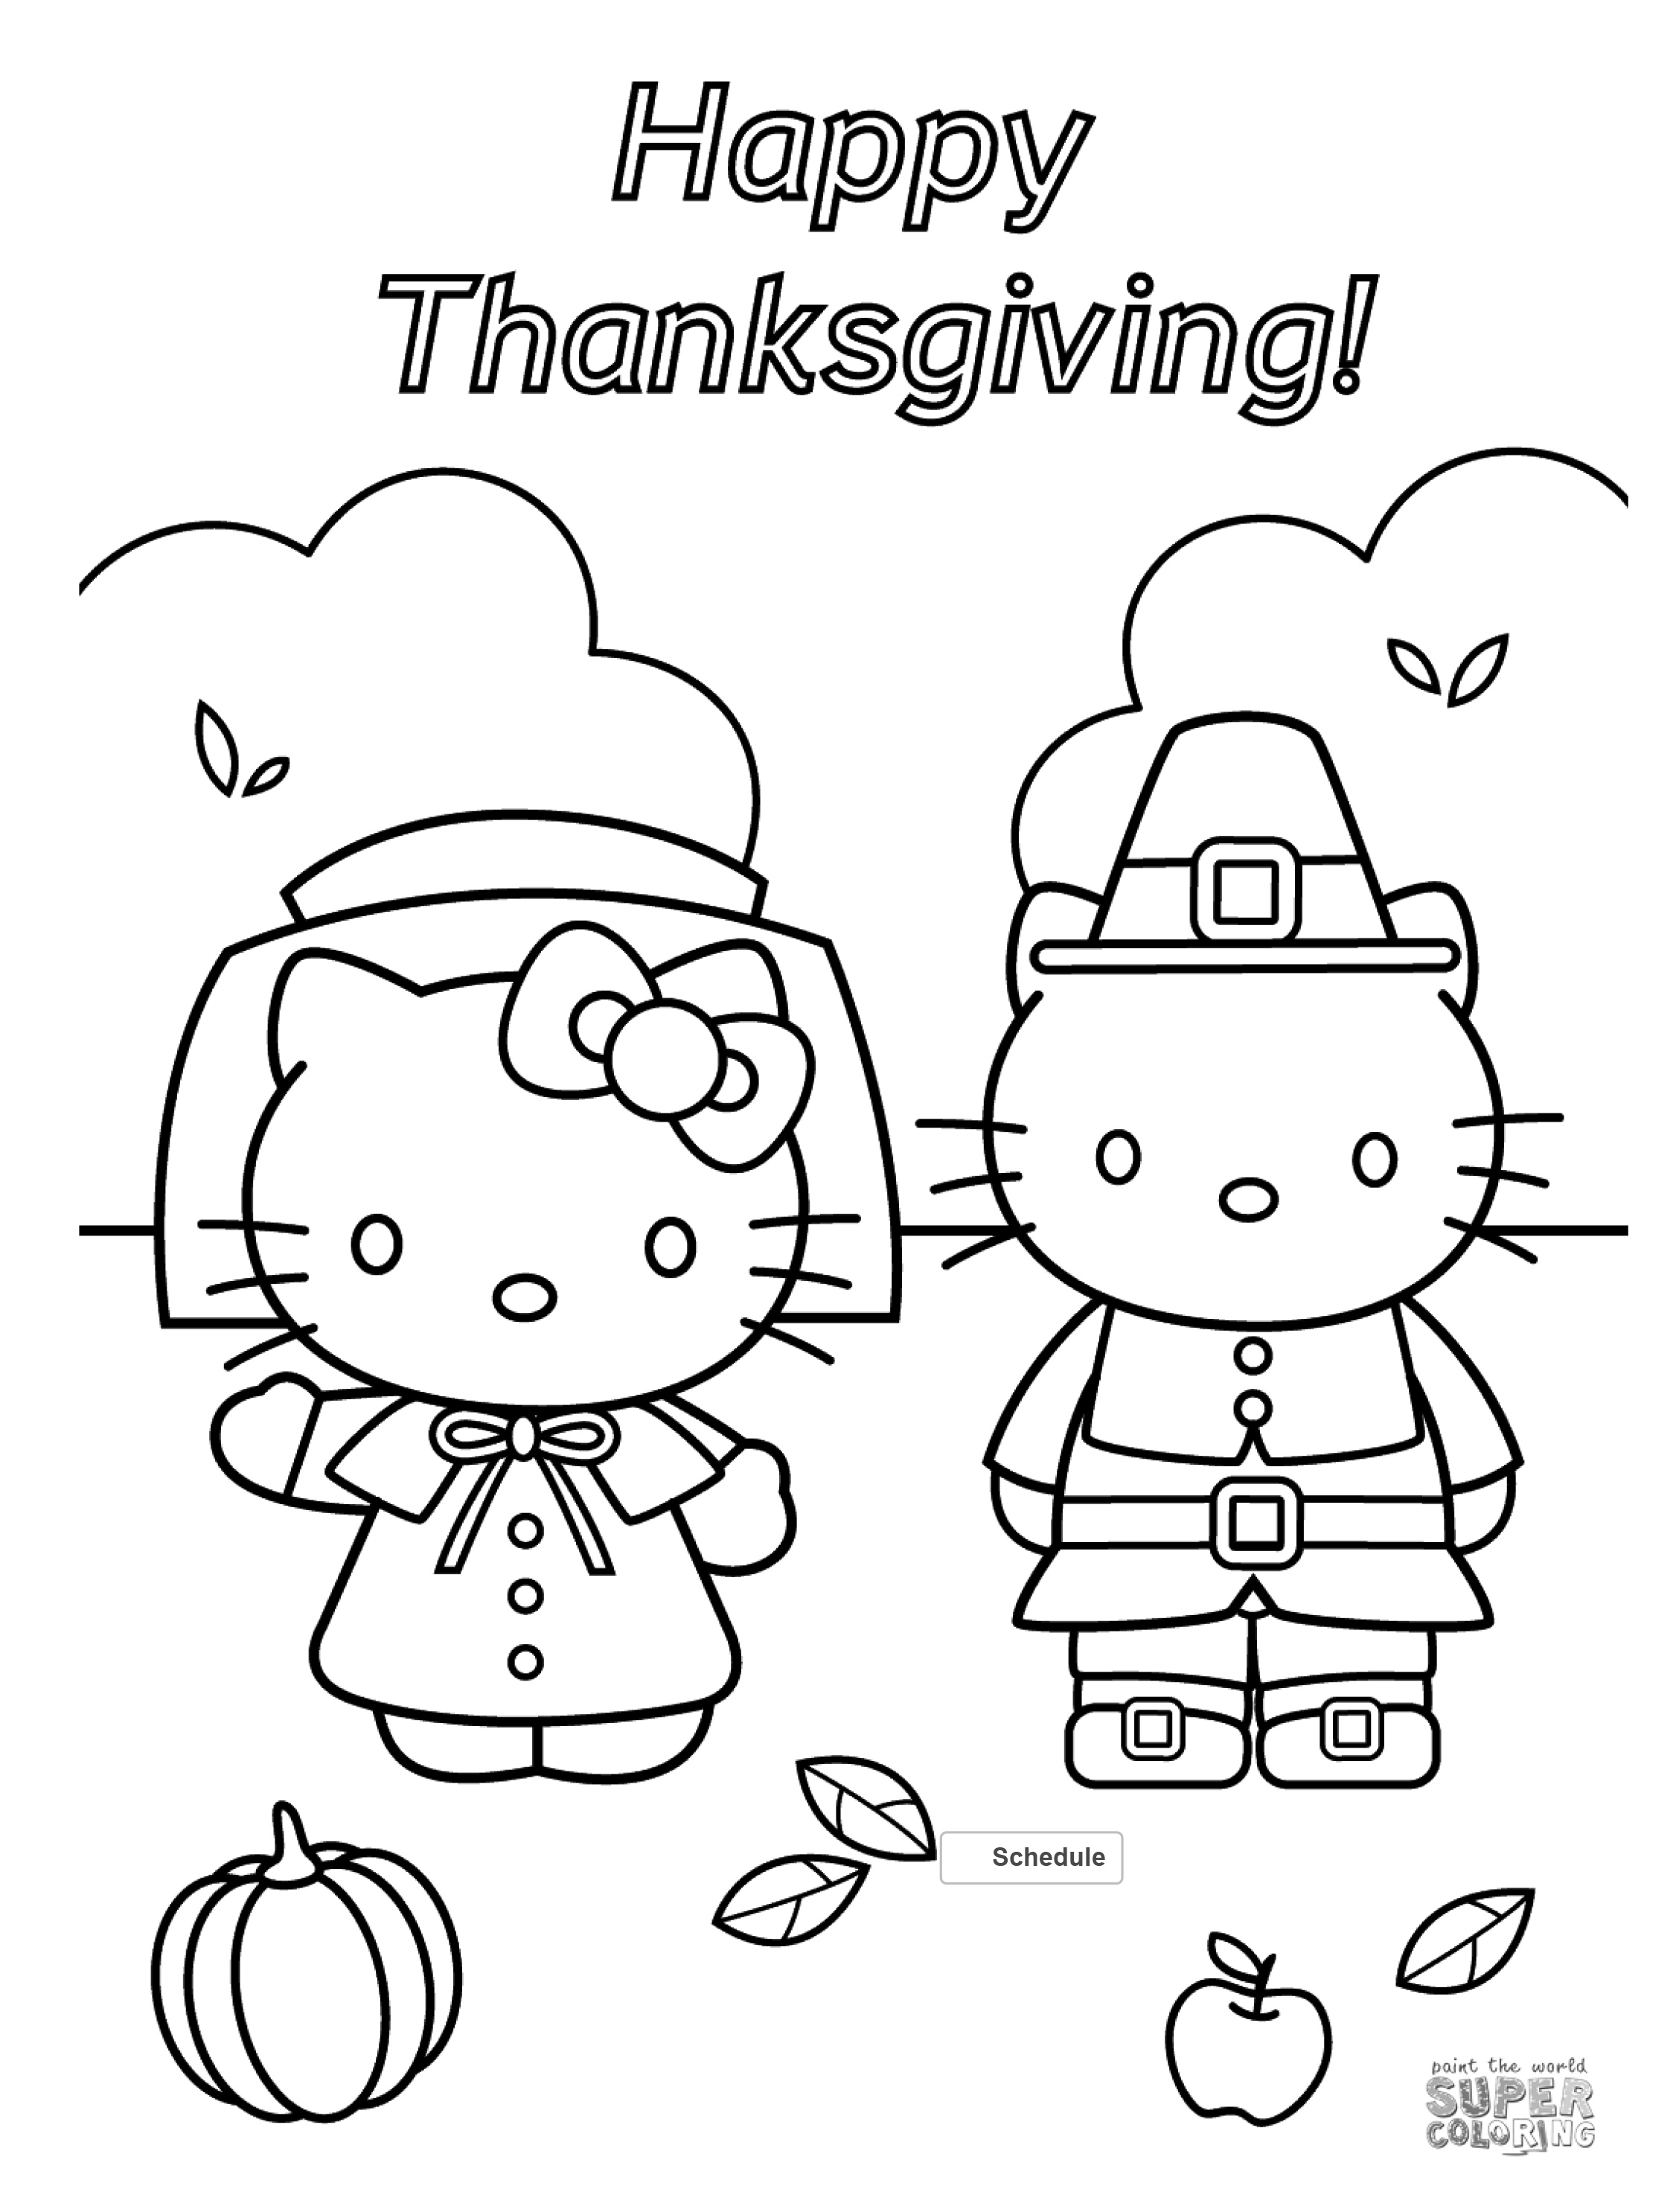 Thanksgiving Coloring Pages For Boys Free Thanksgiving Coloring Pages For Adults Kids Happiness Is